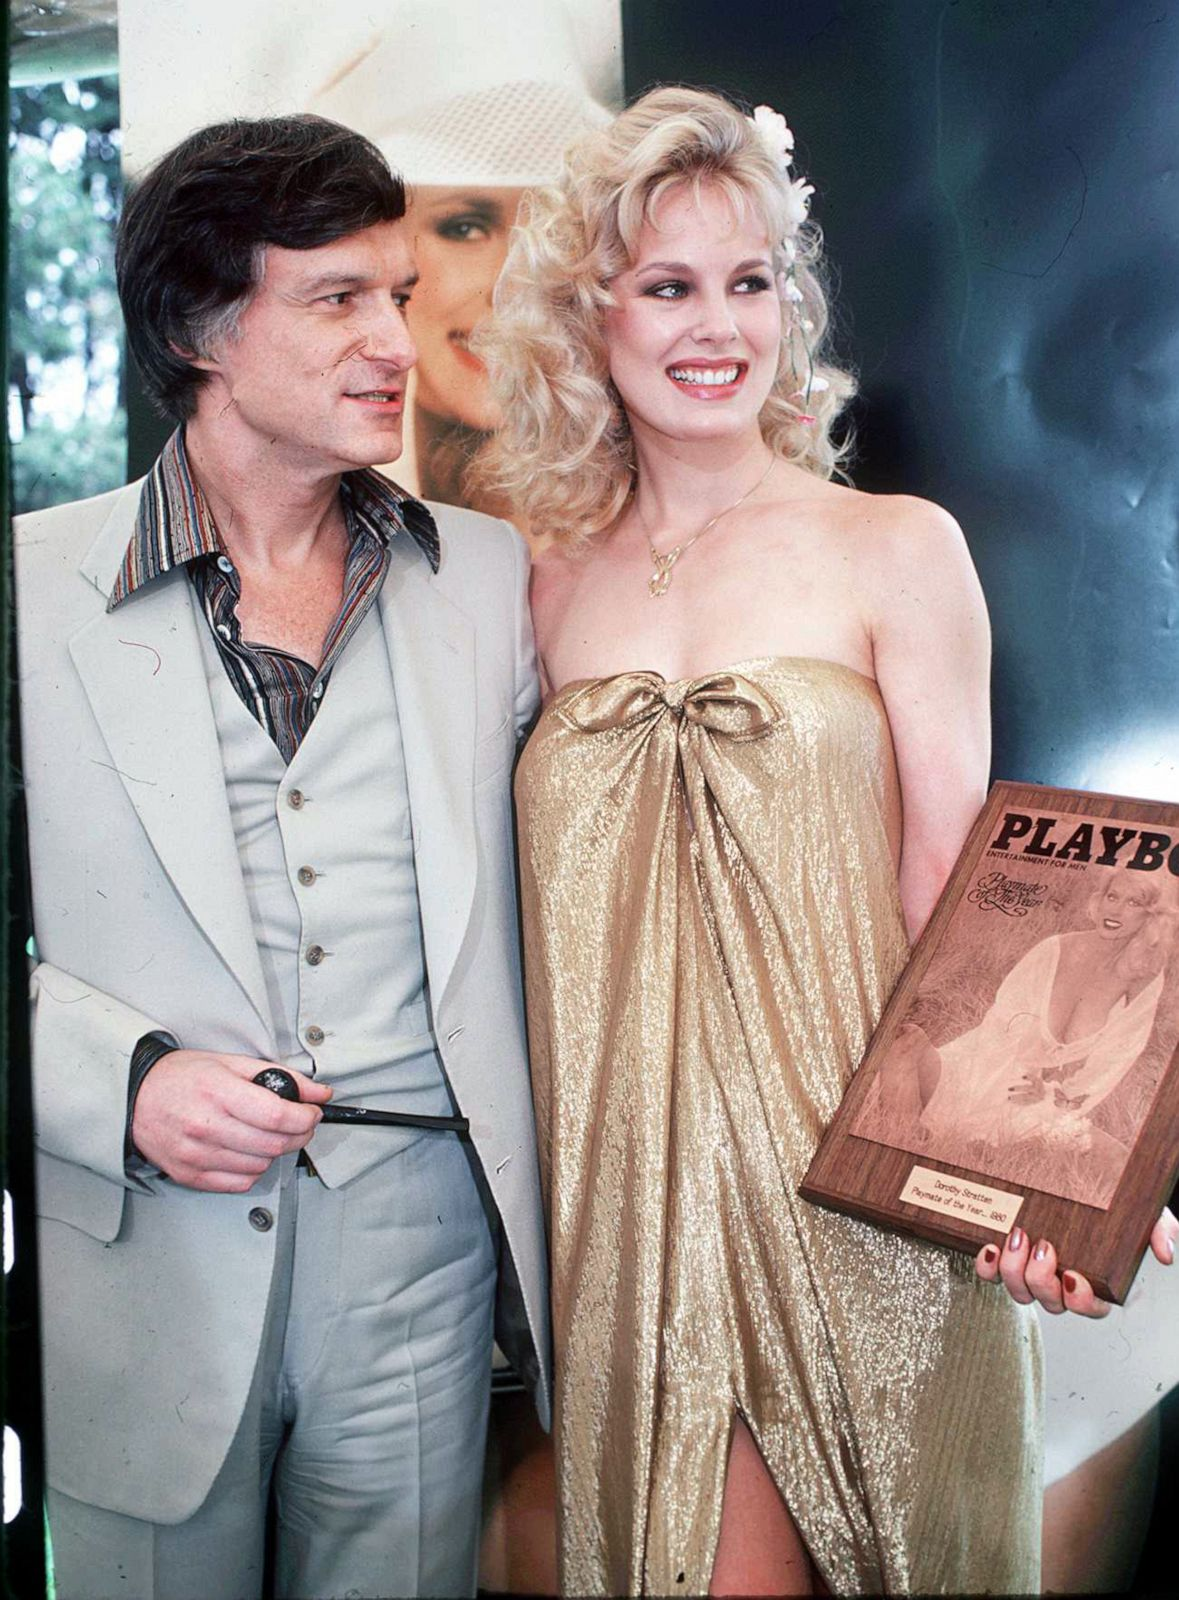 American Playboy The Hugh Hefner Story Wiki the horrific murder of a playboy playmate on the verge of